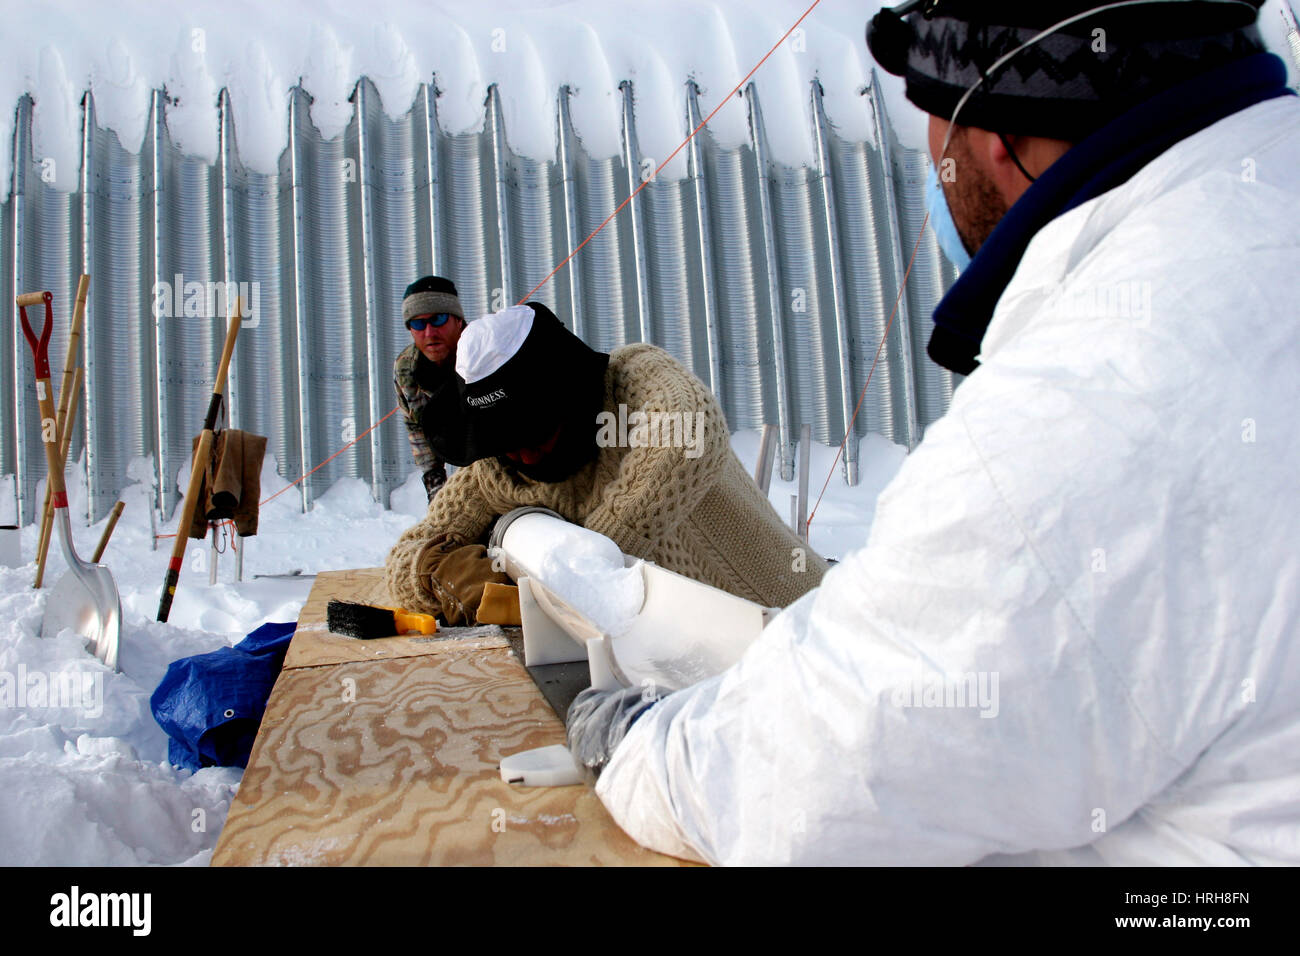 Ice sheet drilling - Stock Image